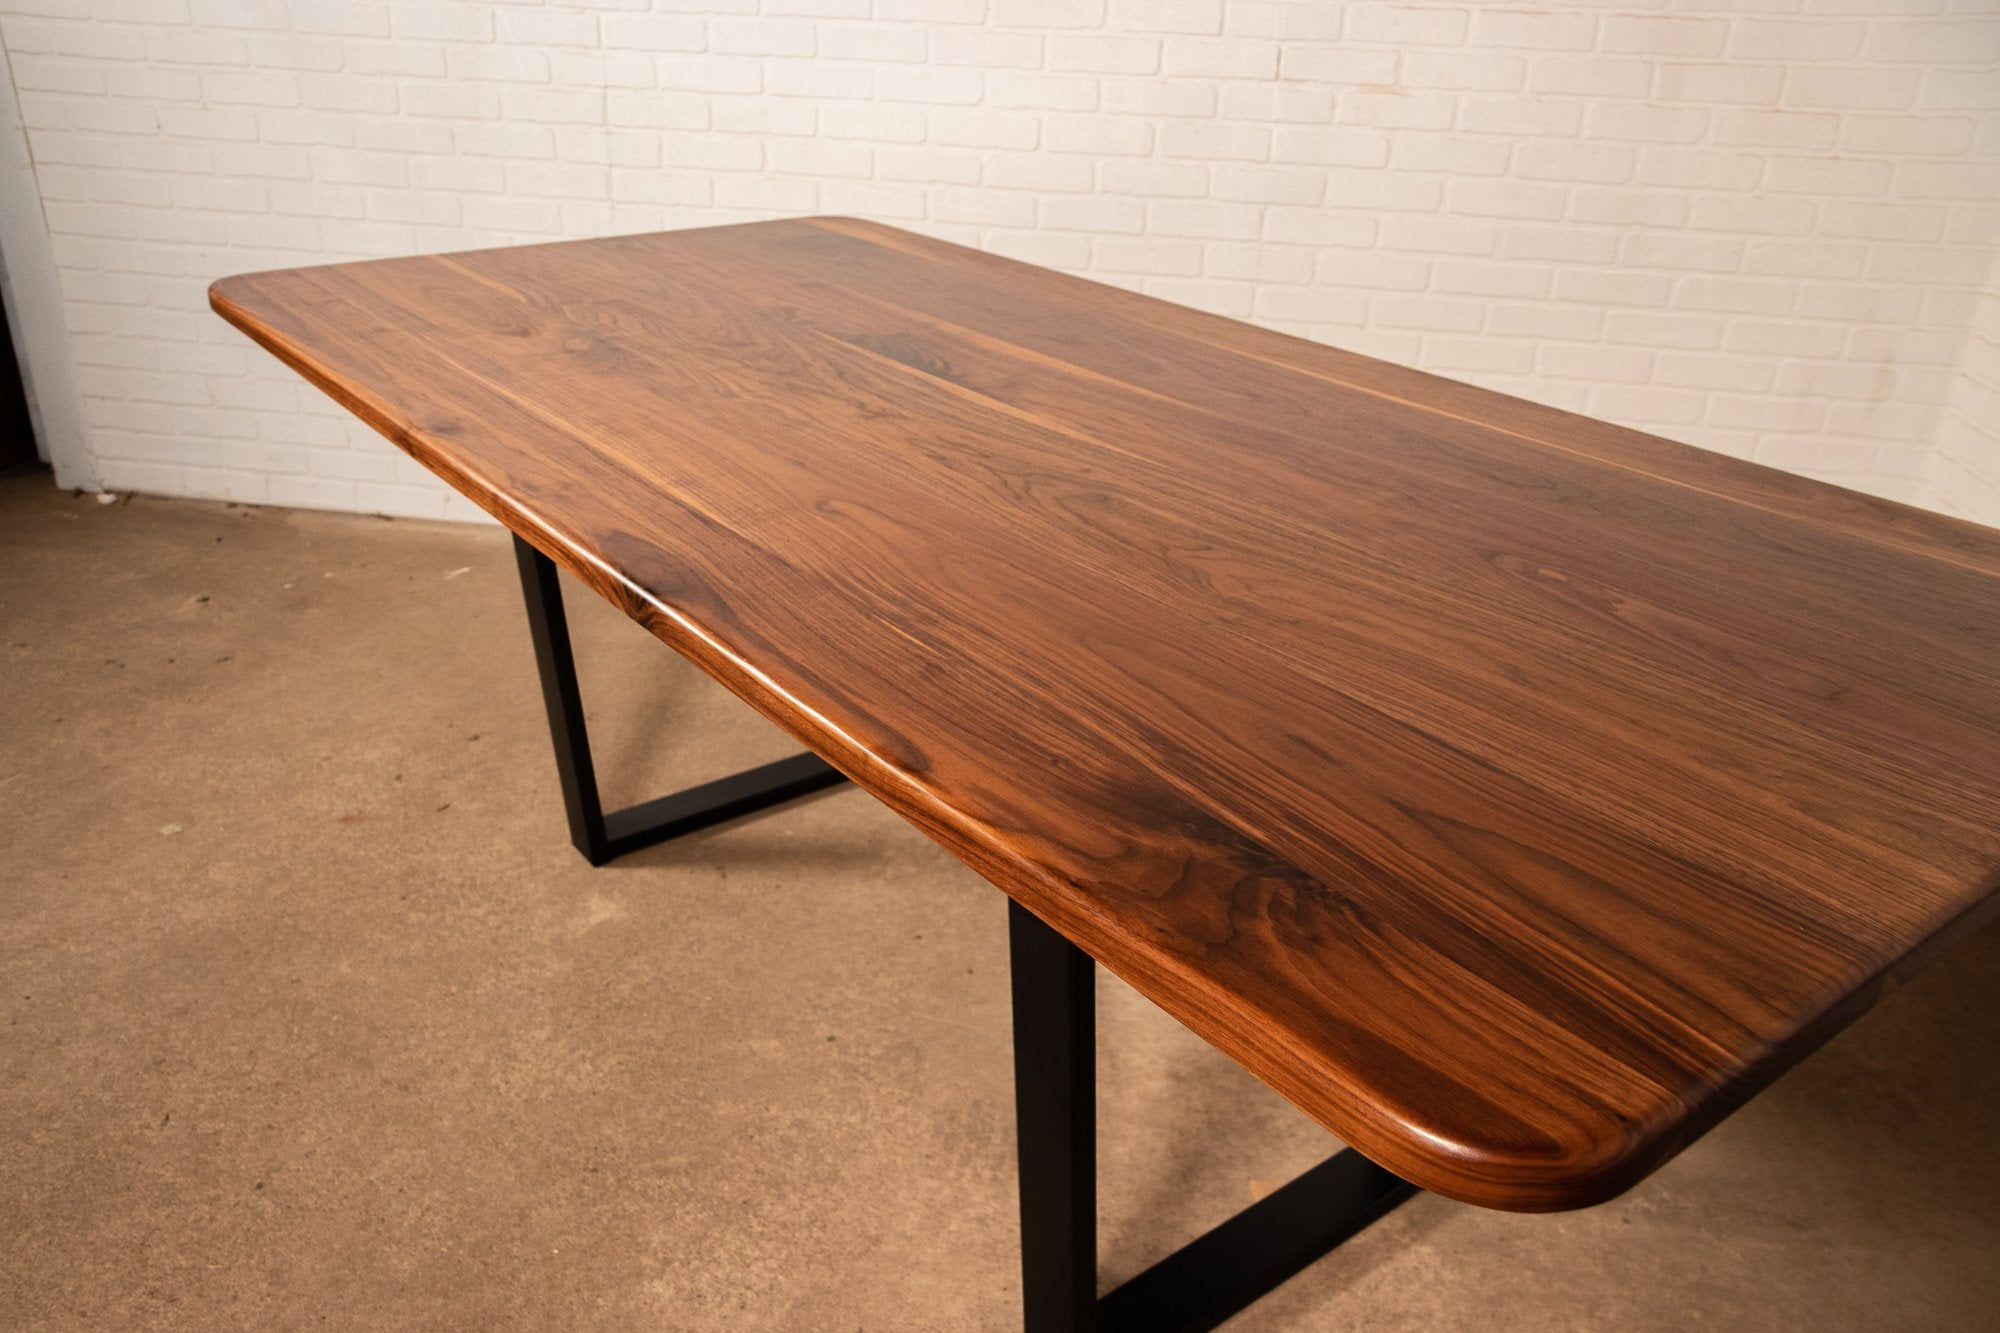 Walnut Dining Table with Rounded Corners - Loewen Design Studios